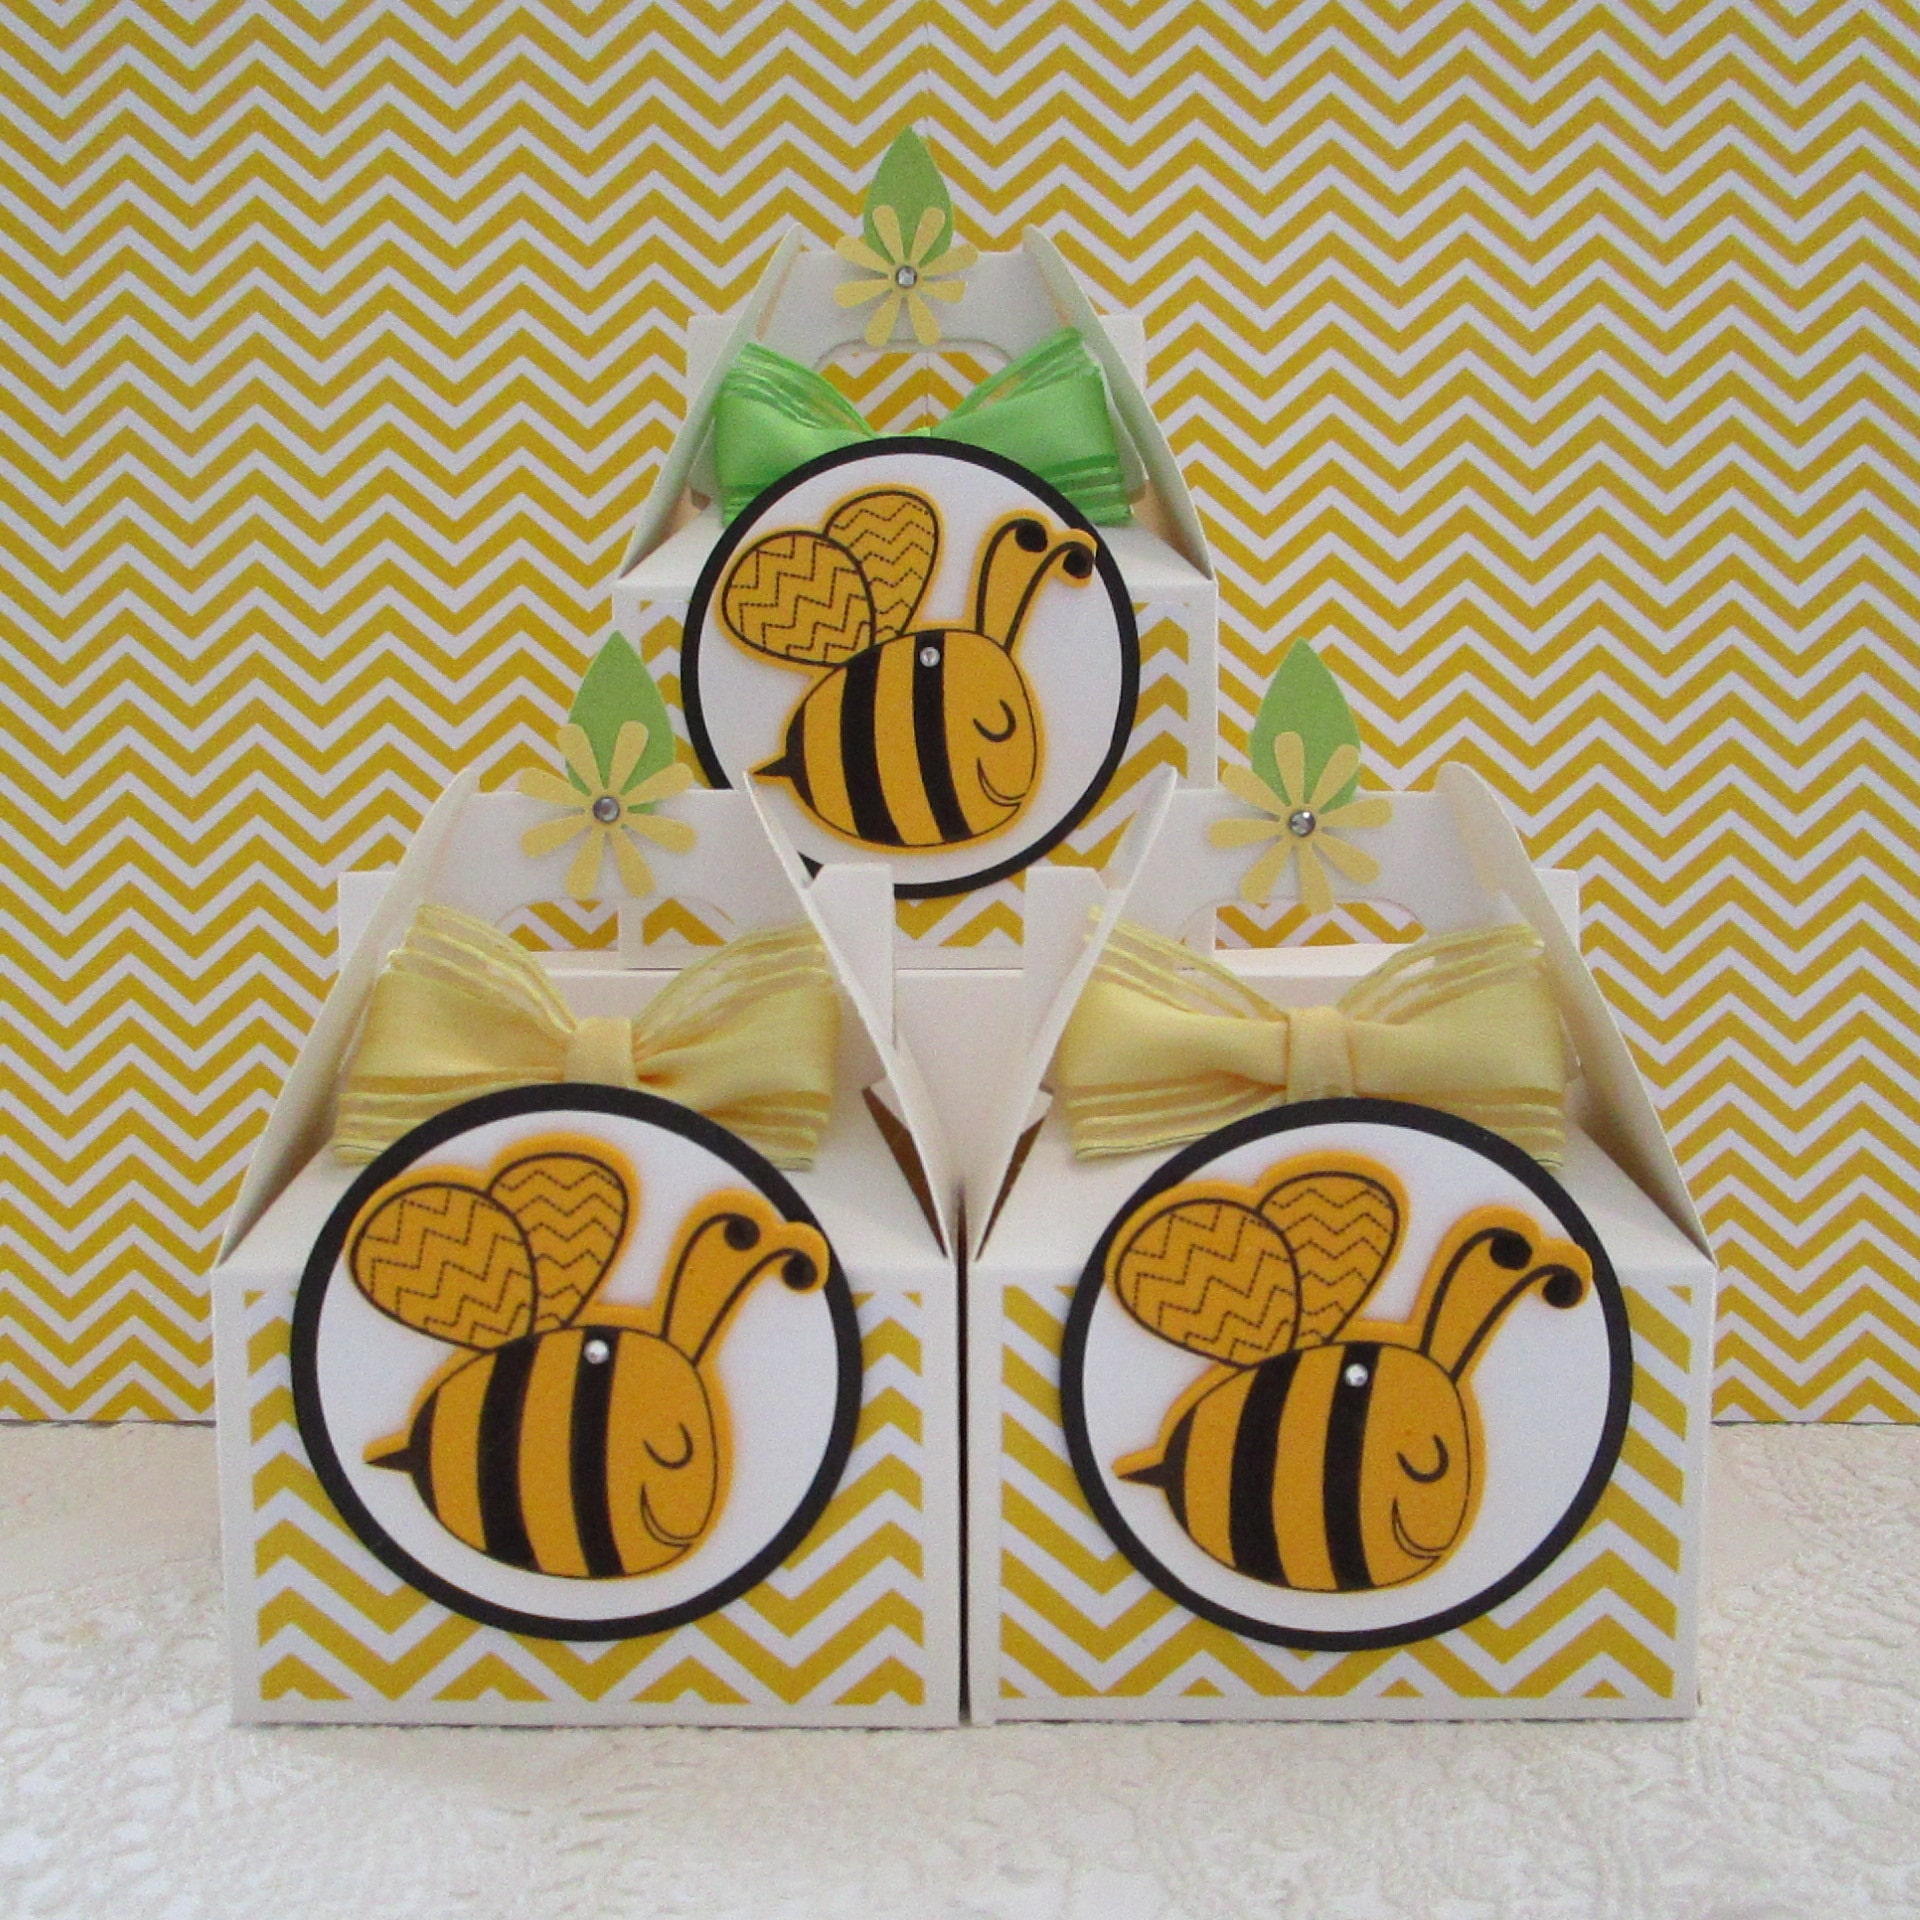 ONLY 3 SETS LEFTBumble Bee Favor Boxes Bumble Party